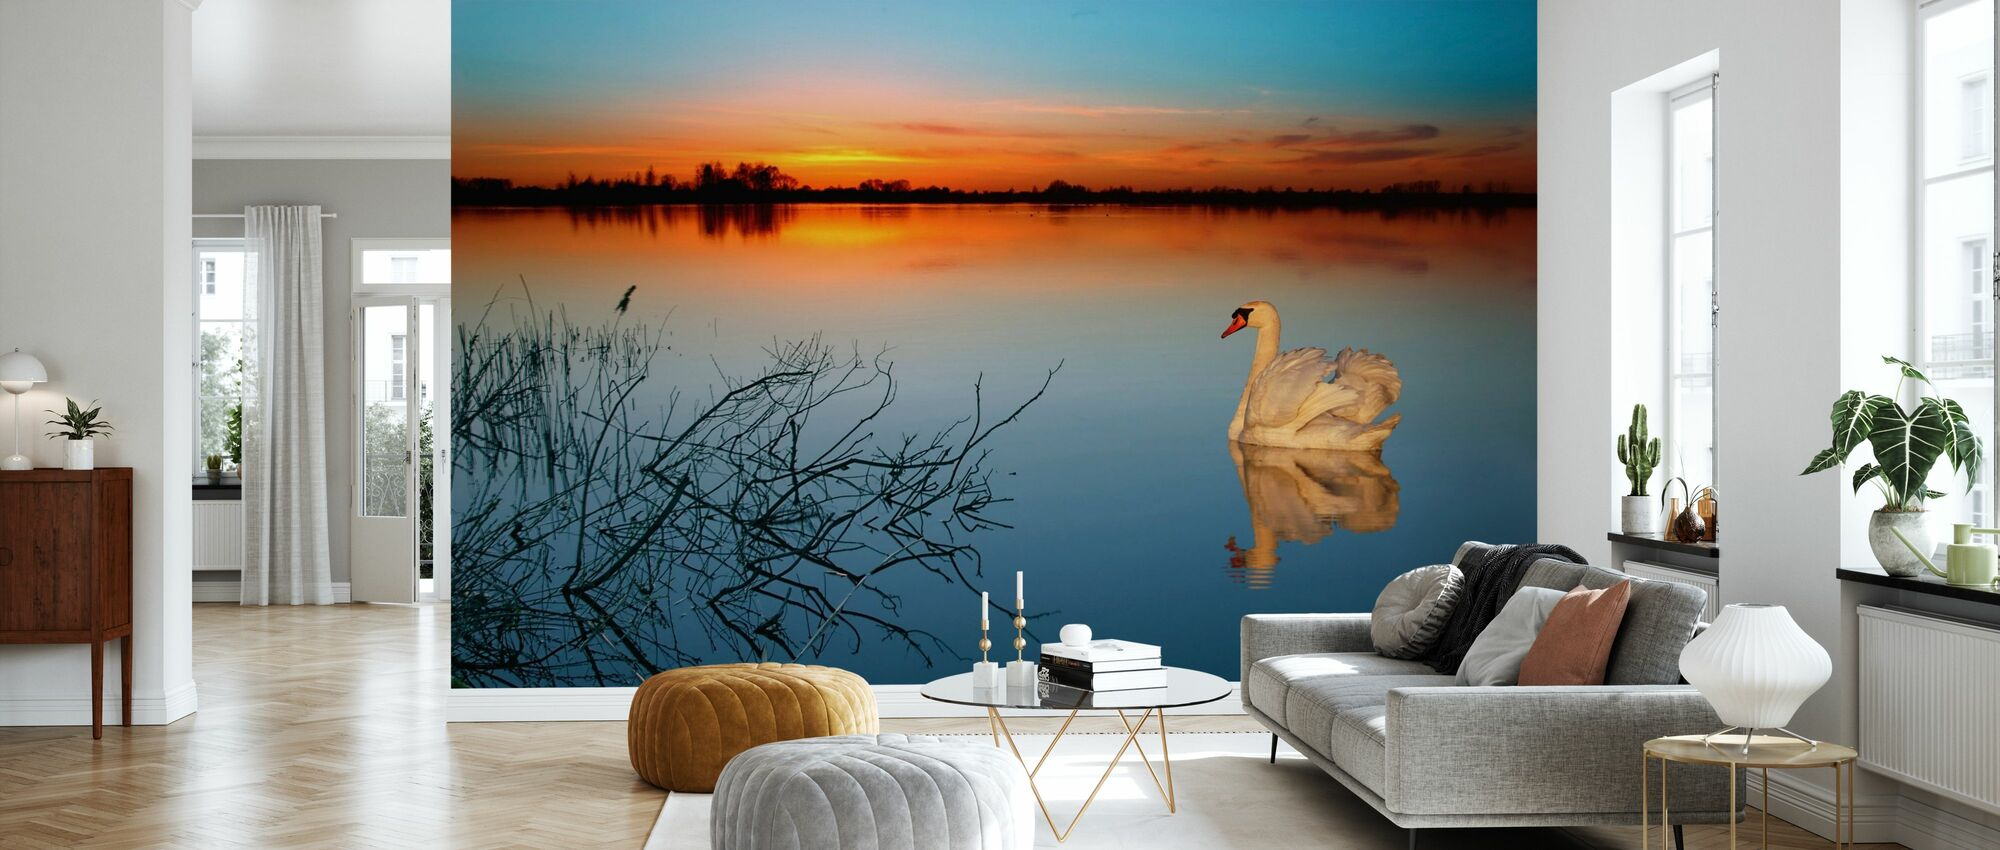 Swan on a lake - Wallpaper - Living Room